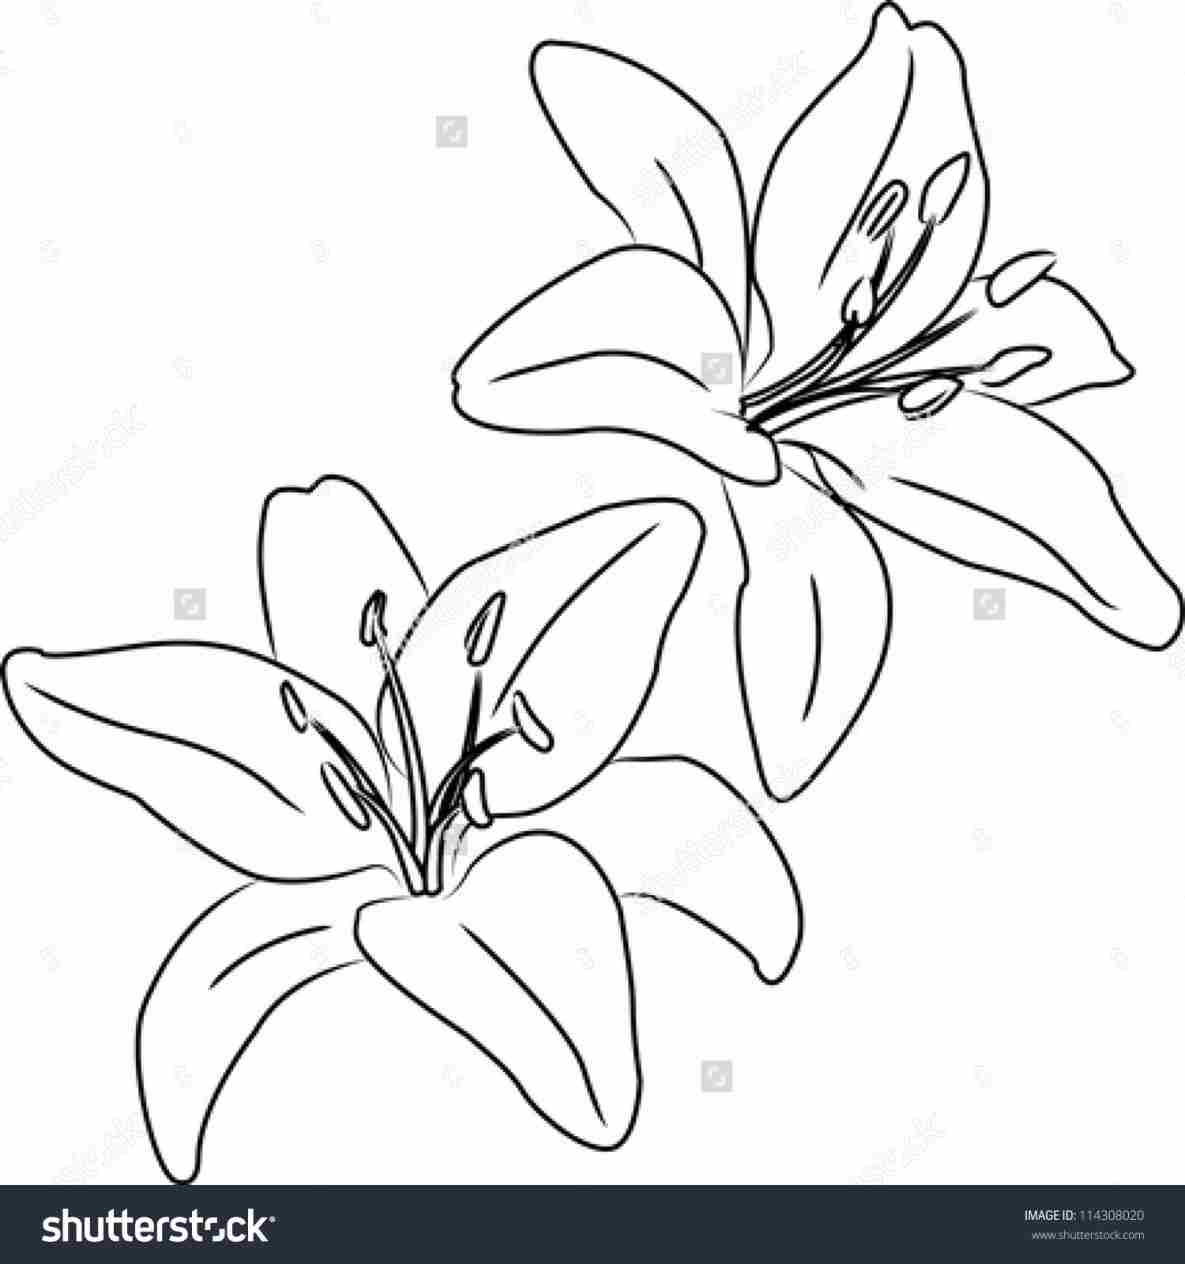 1185x1264 Realistic Lily Flower Drawing Drawing Fine Art